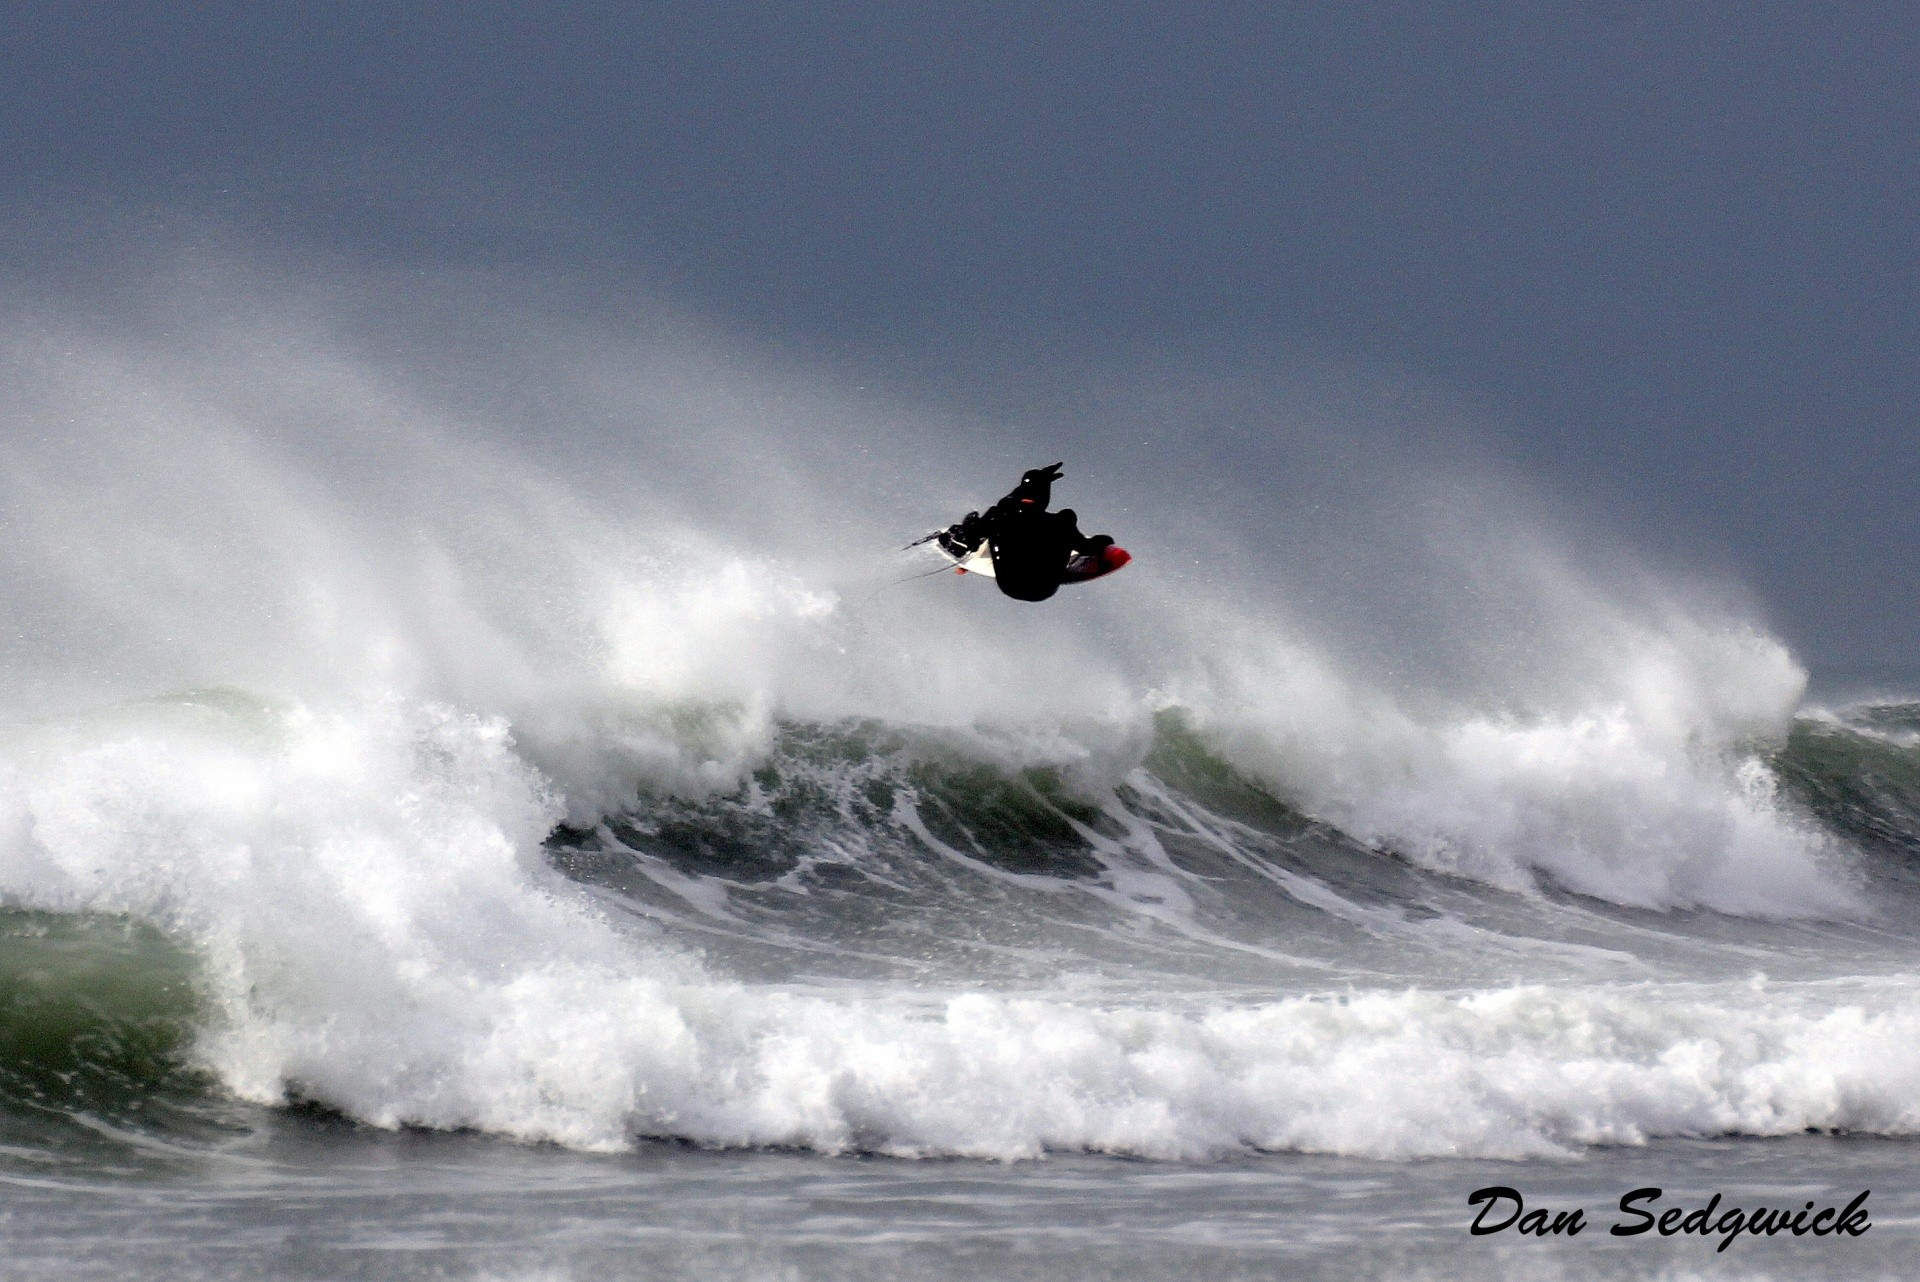 Dan Sedgwick's photo of Perranporth (Droskyn)